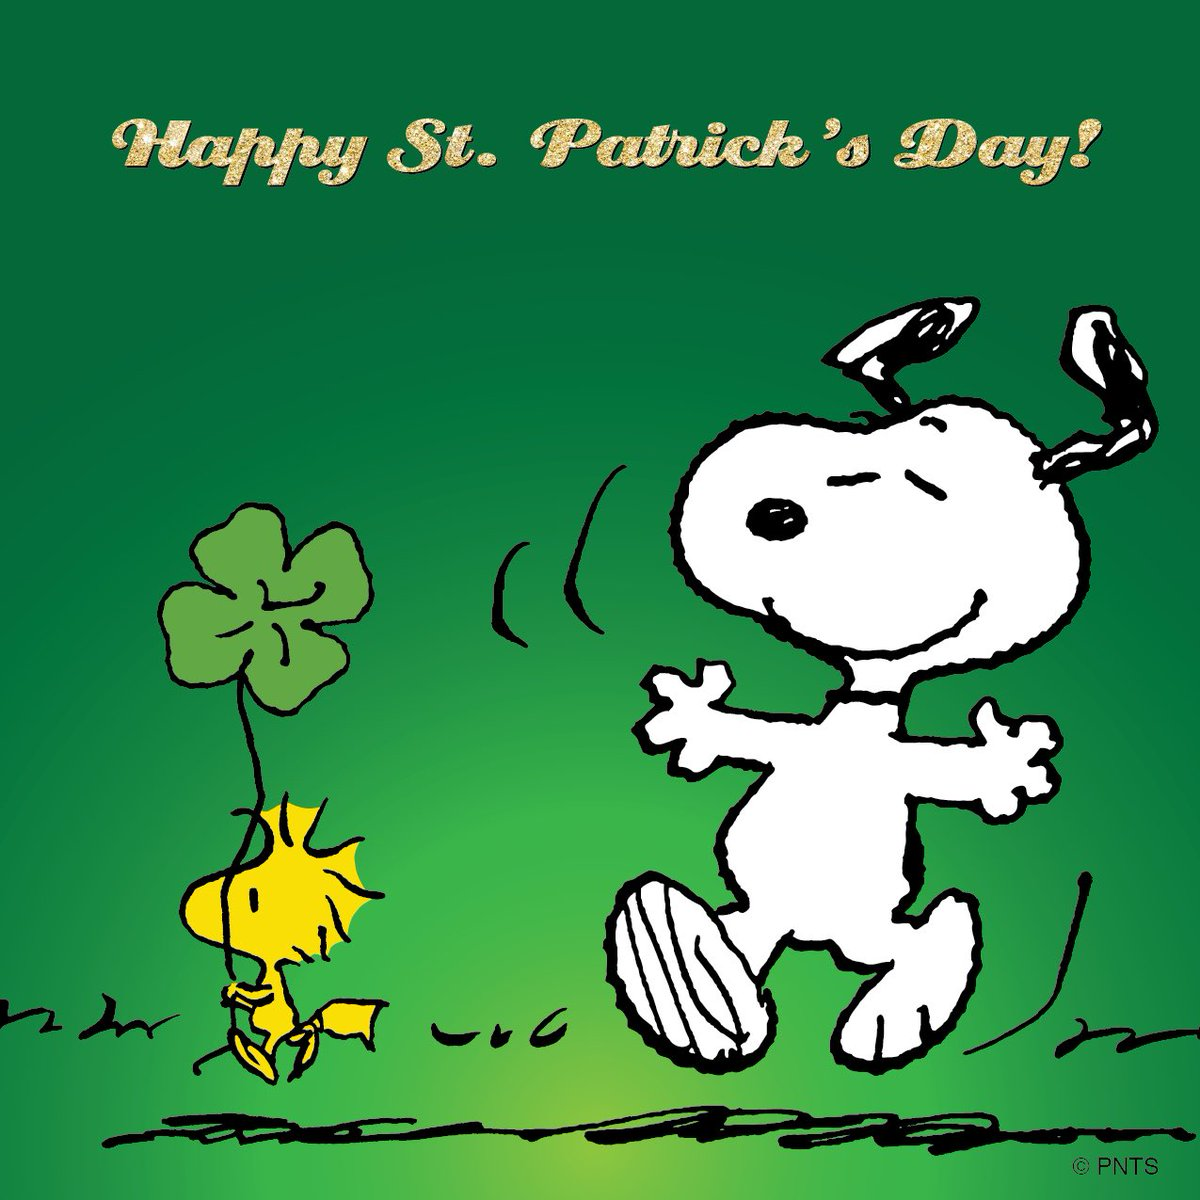 peanuts on twitter happy st patrick s day https t co